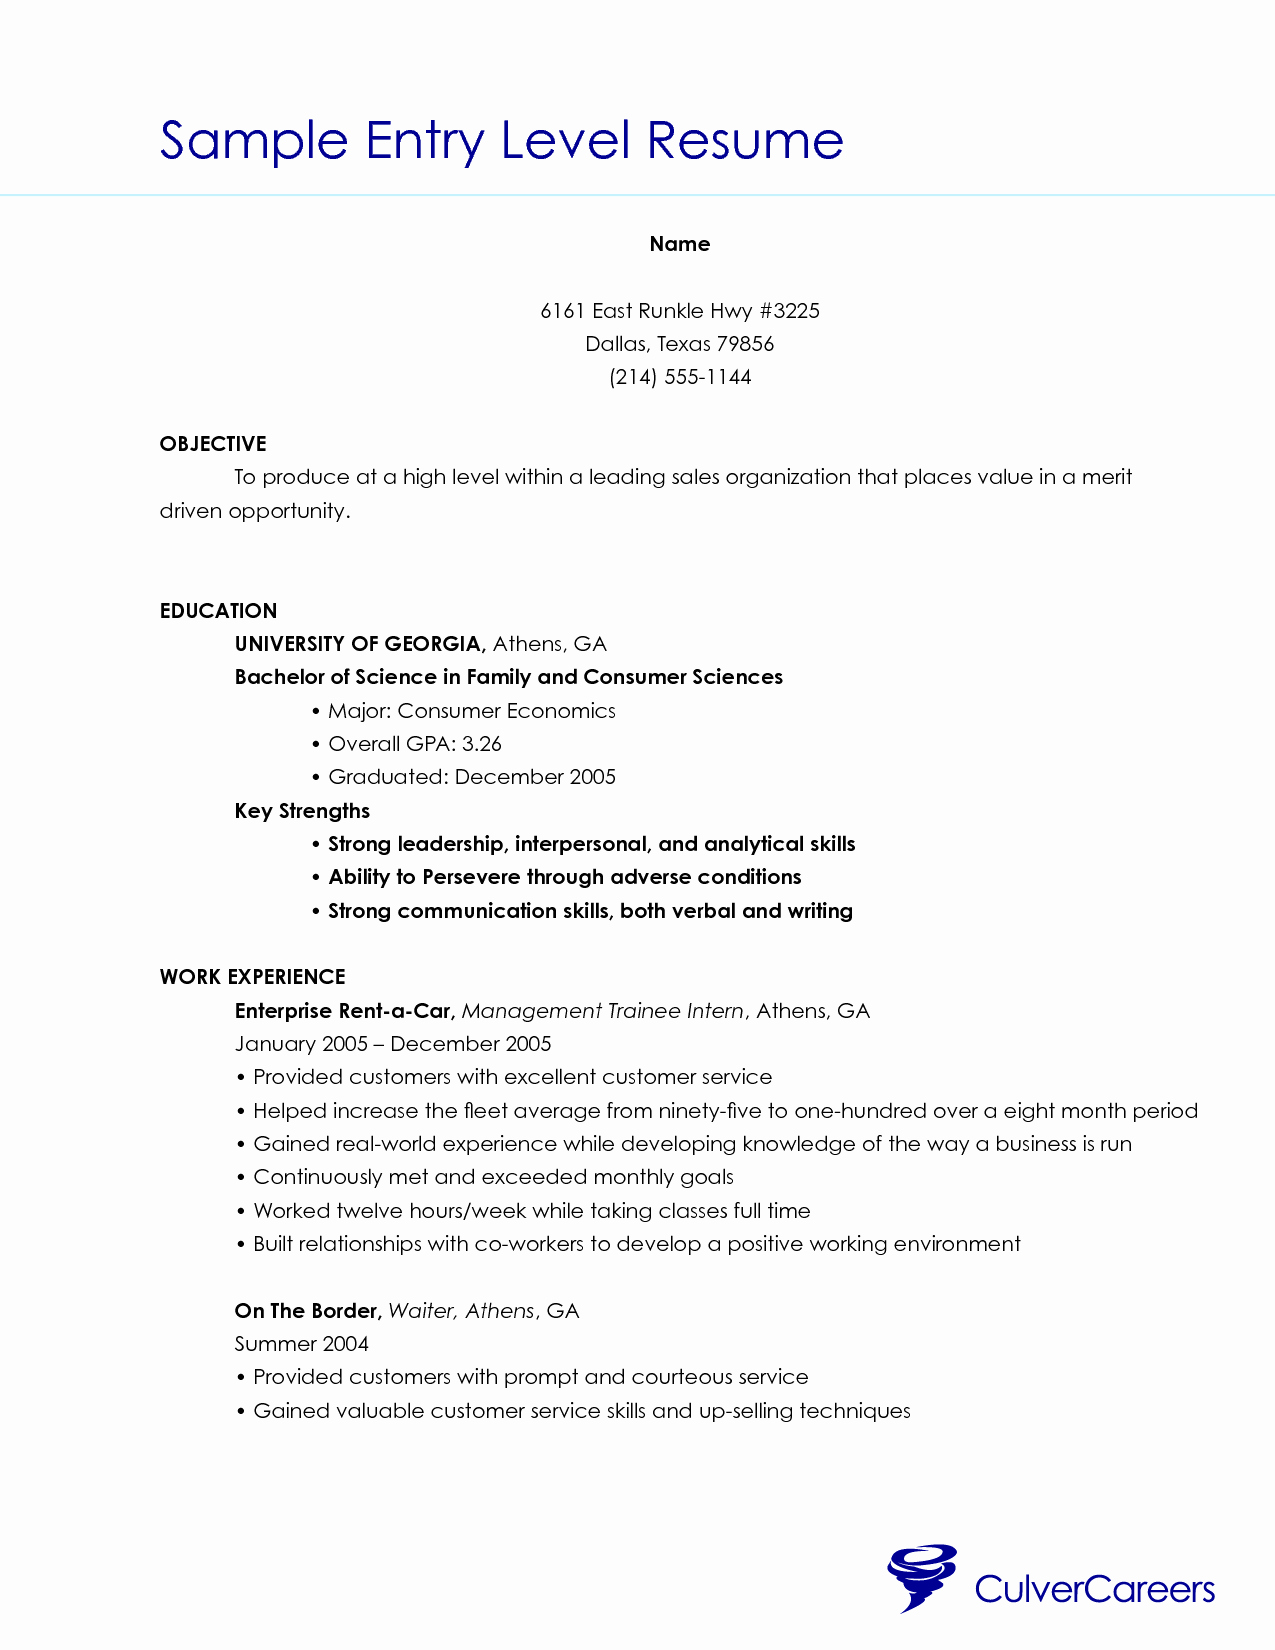 Resume Examples for Entry Level Skills Customer Servic